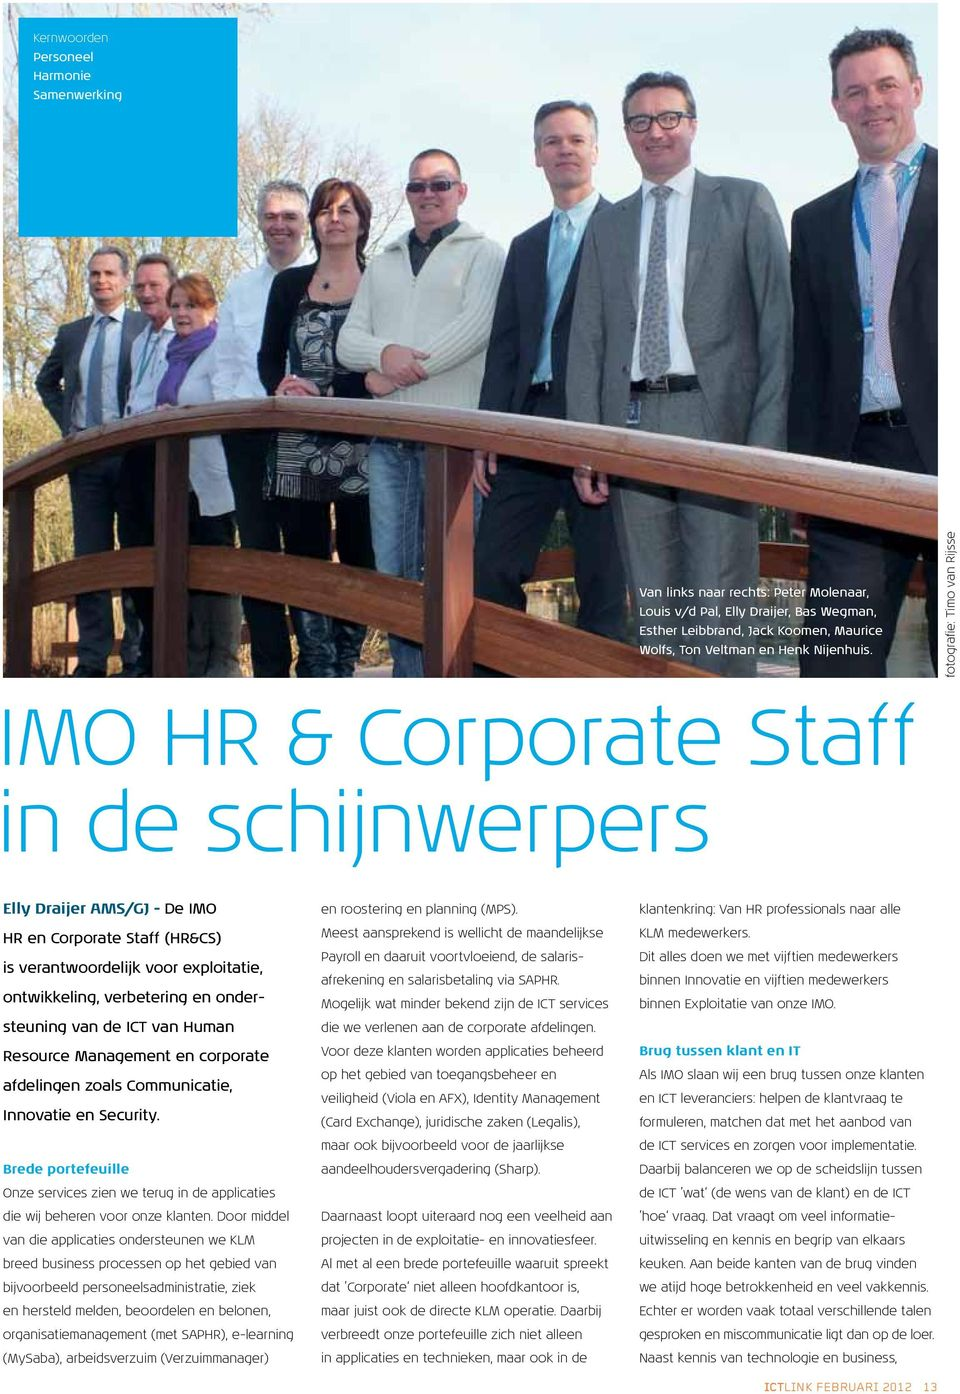 ondersteuning van de ICT van Human Resource Management en corporate afdelingen zoals Communicatie, Innovatie en Security.